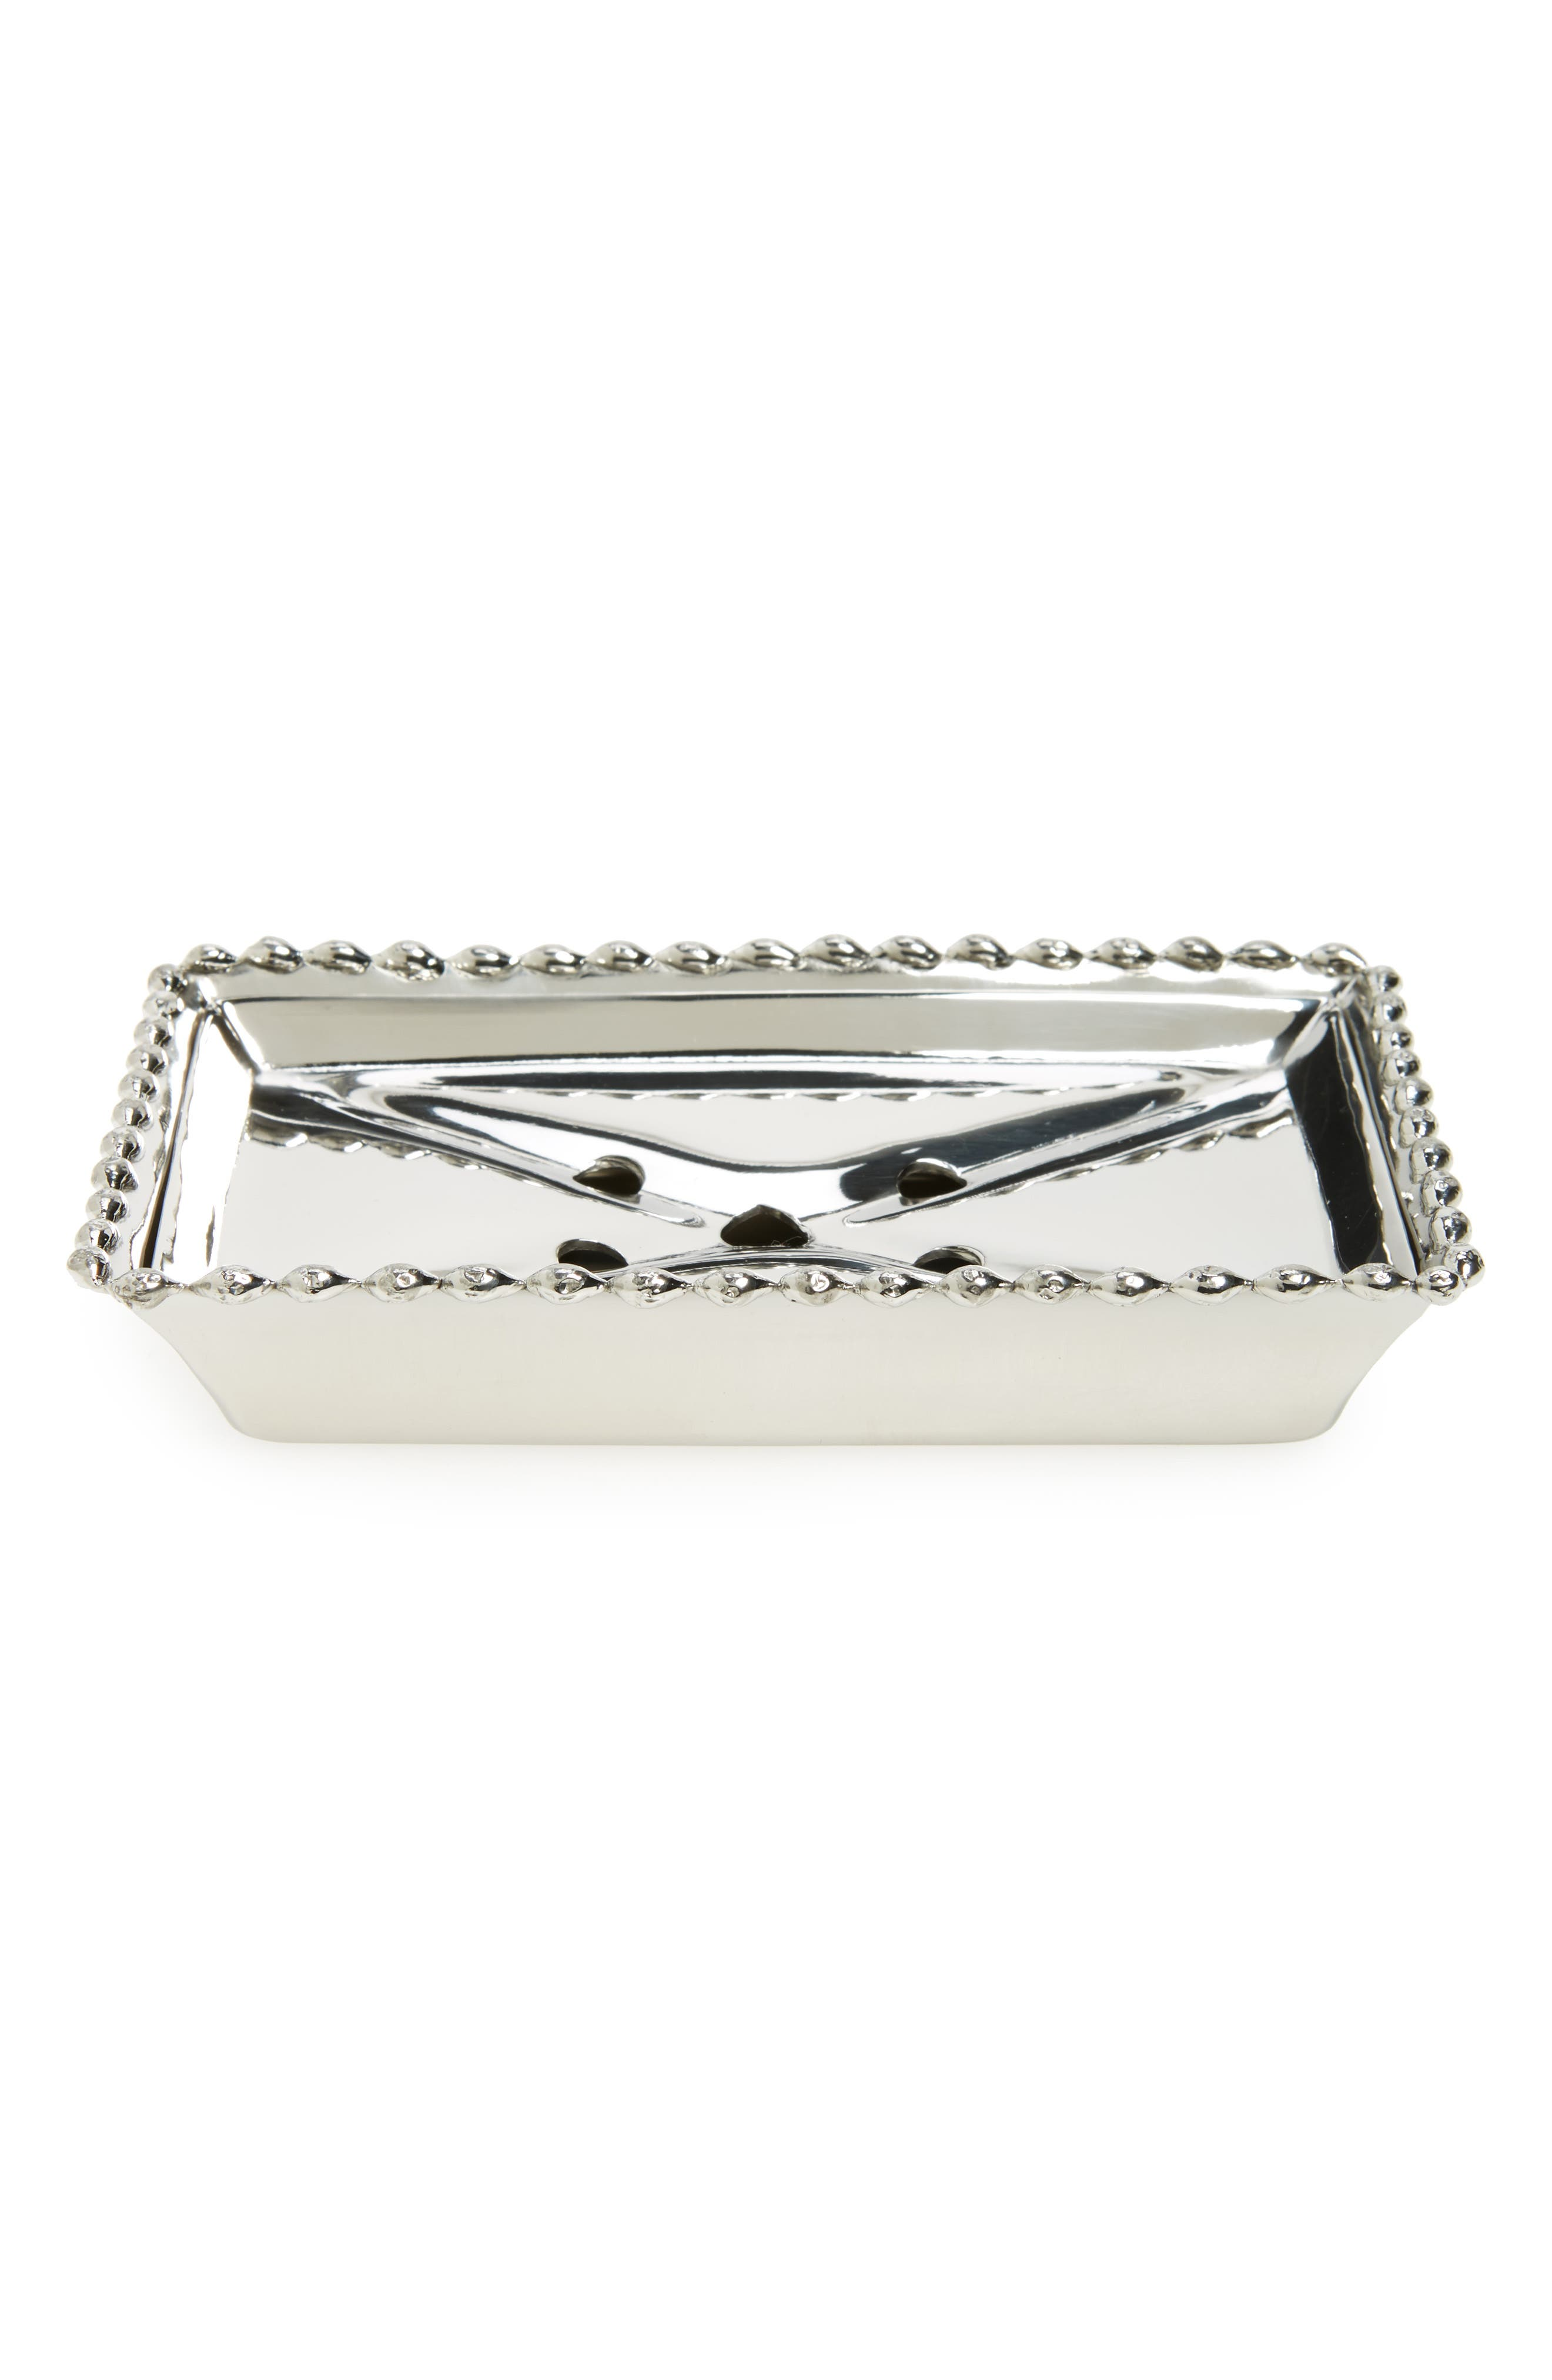 Michael Aram Molten Stainless Steel Soap Dish